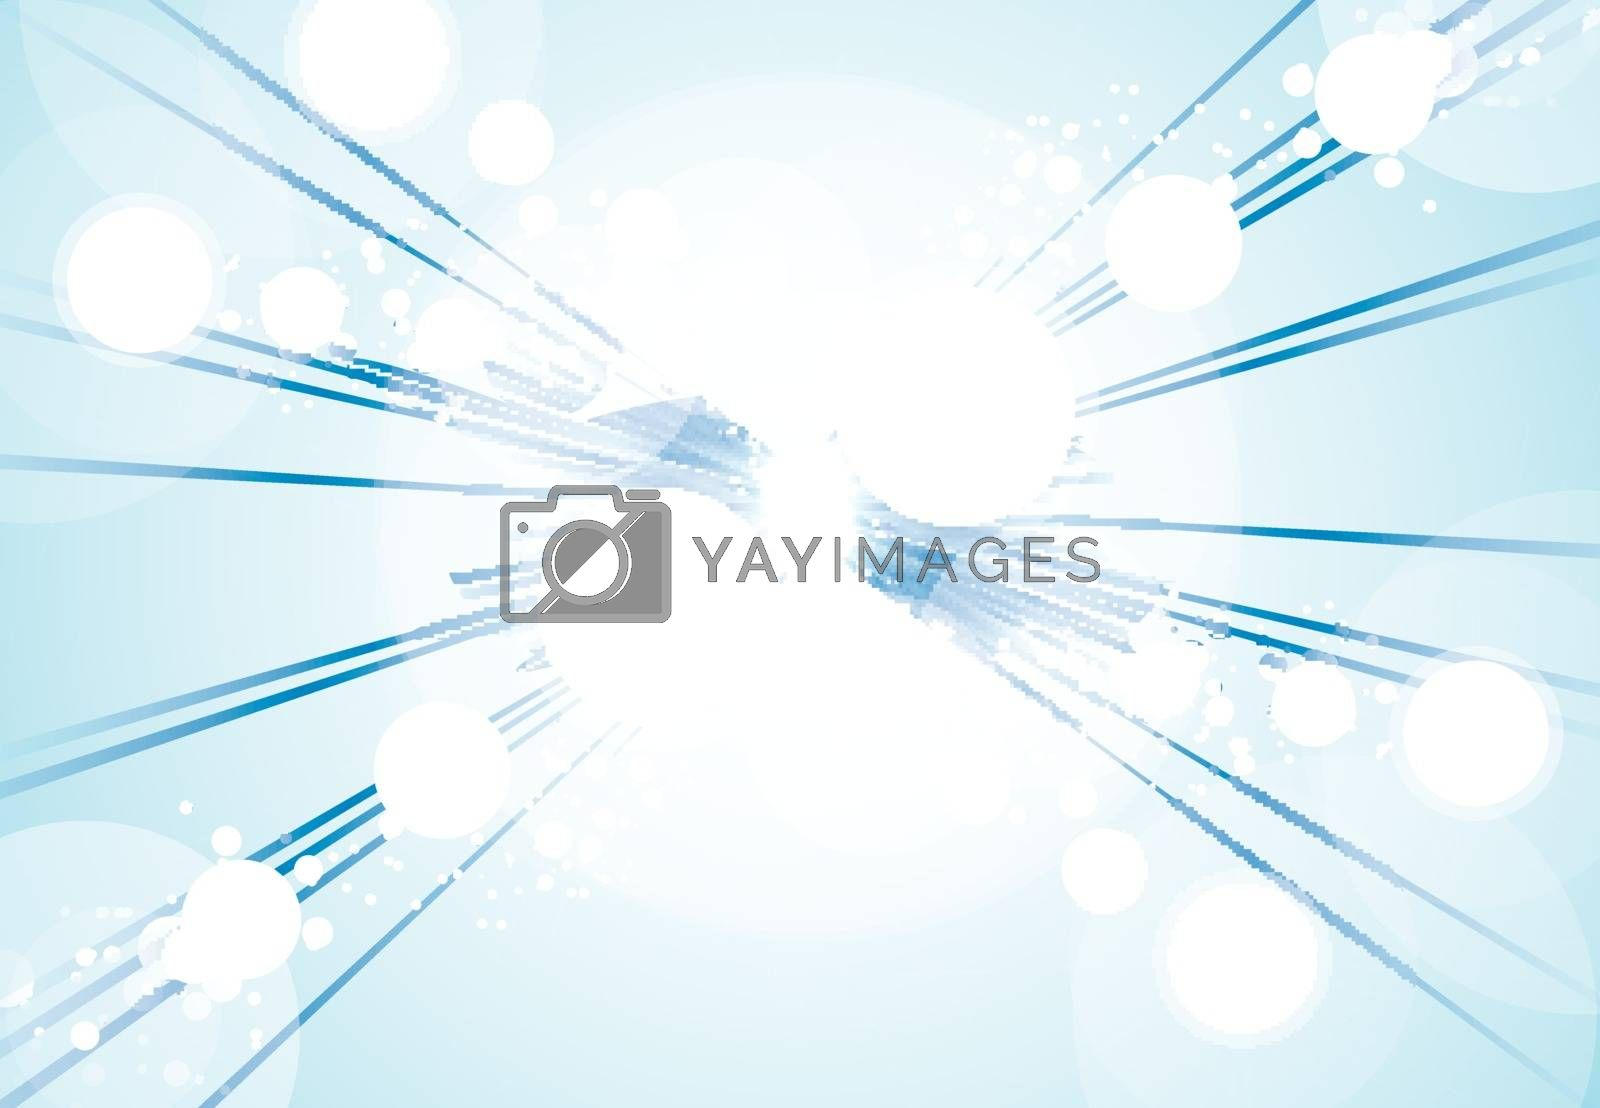 Perspective Abstract bright blue lights and lines background with sparkle and flare. Vector illustration